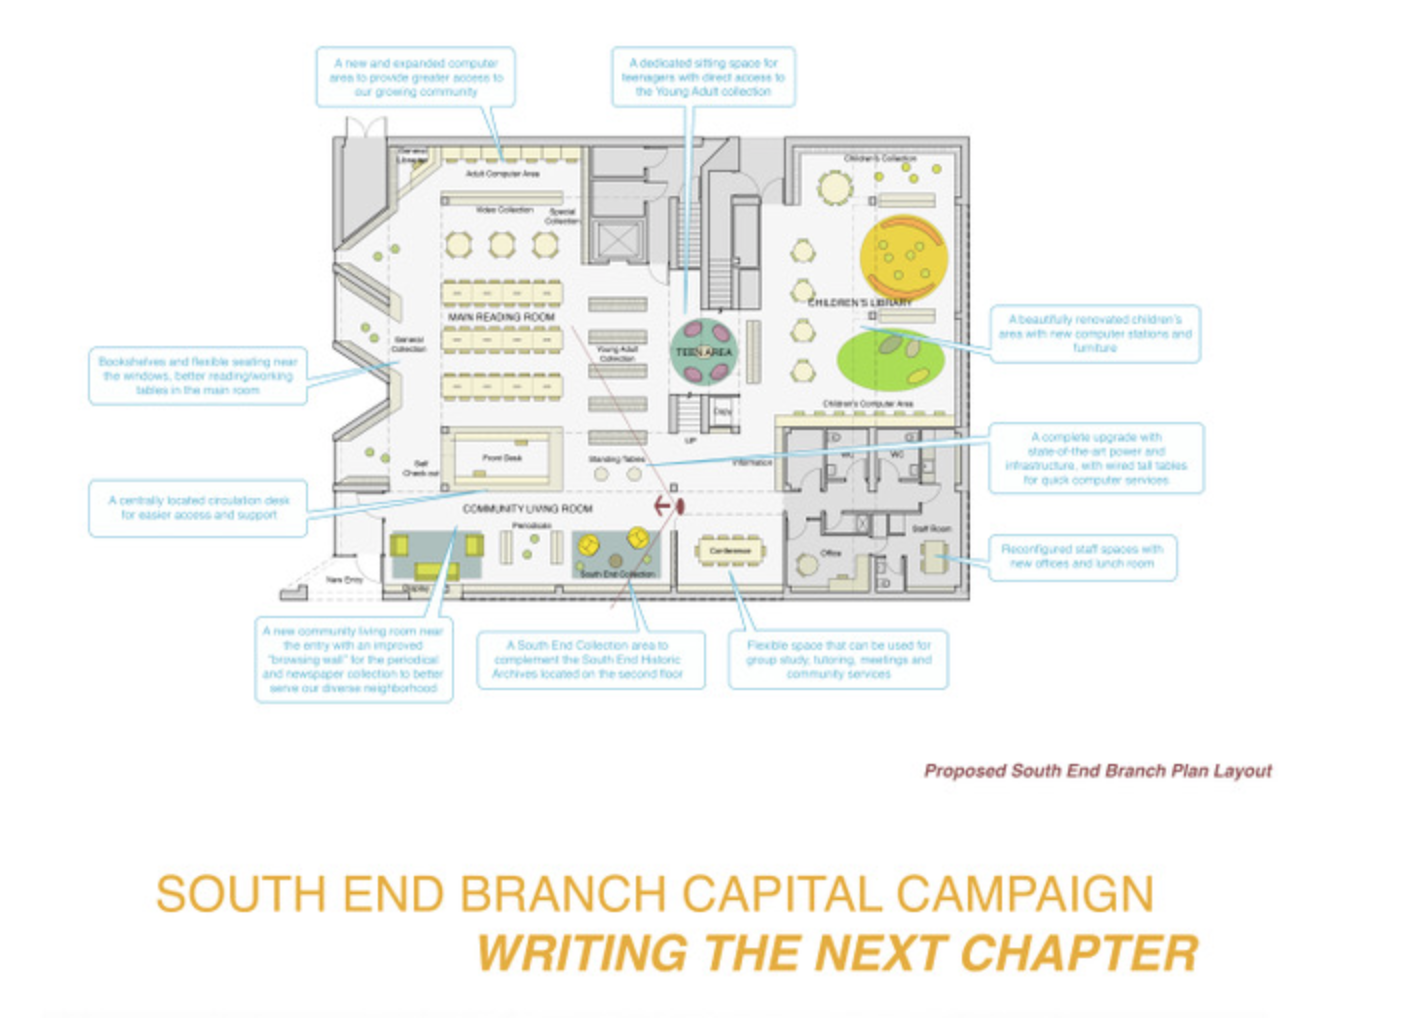 Proposed changes to the downstairs interior of the South End Library